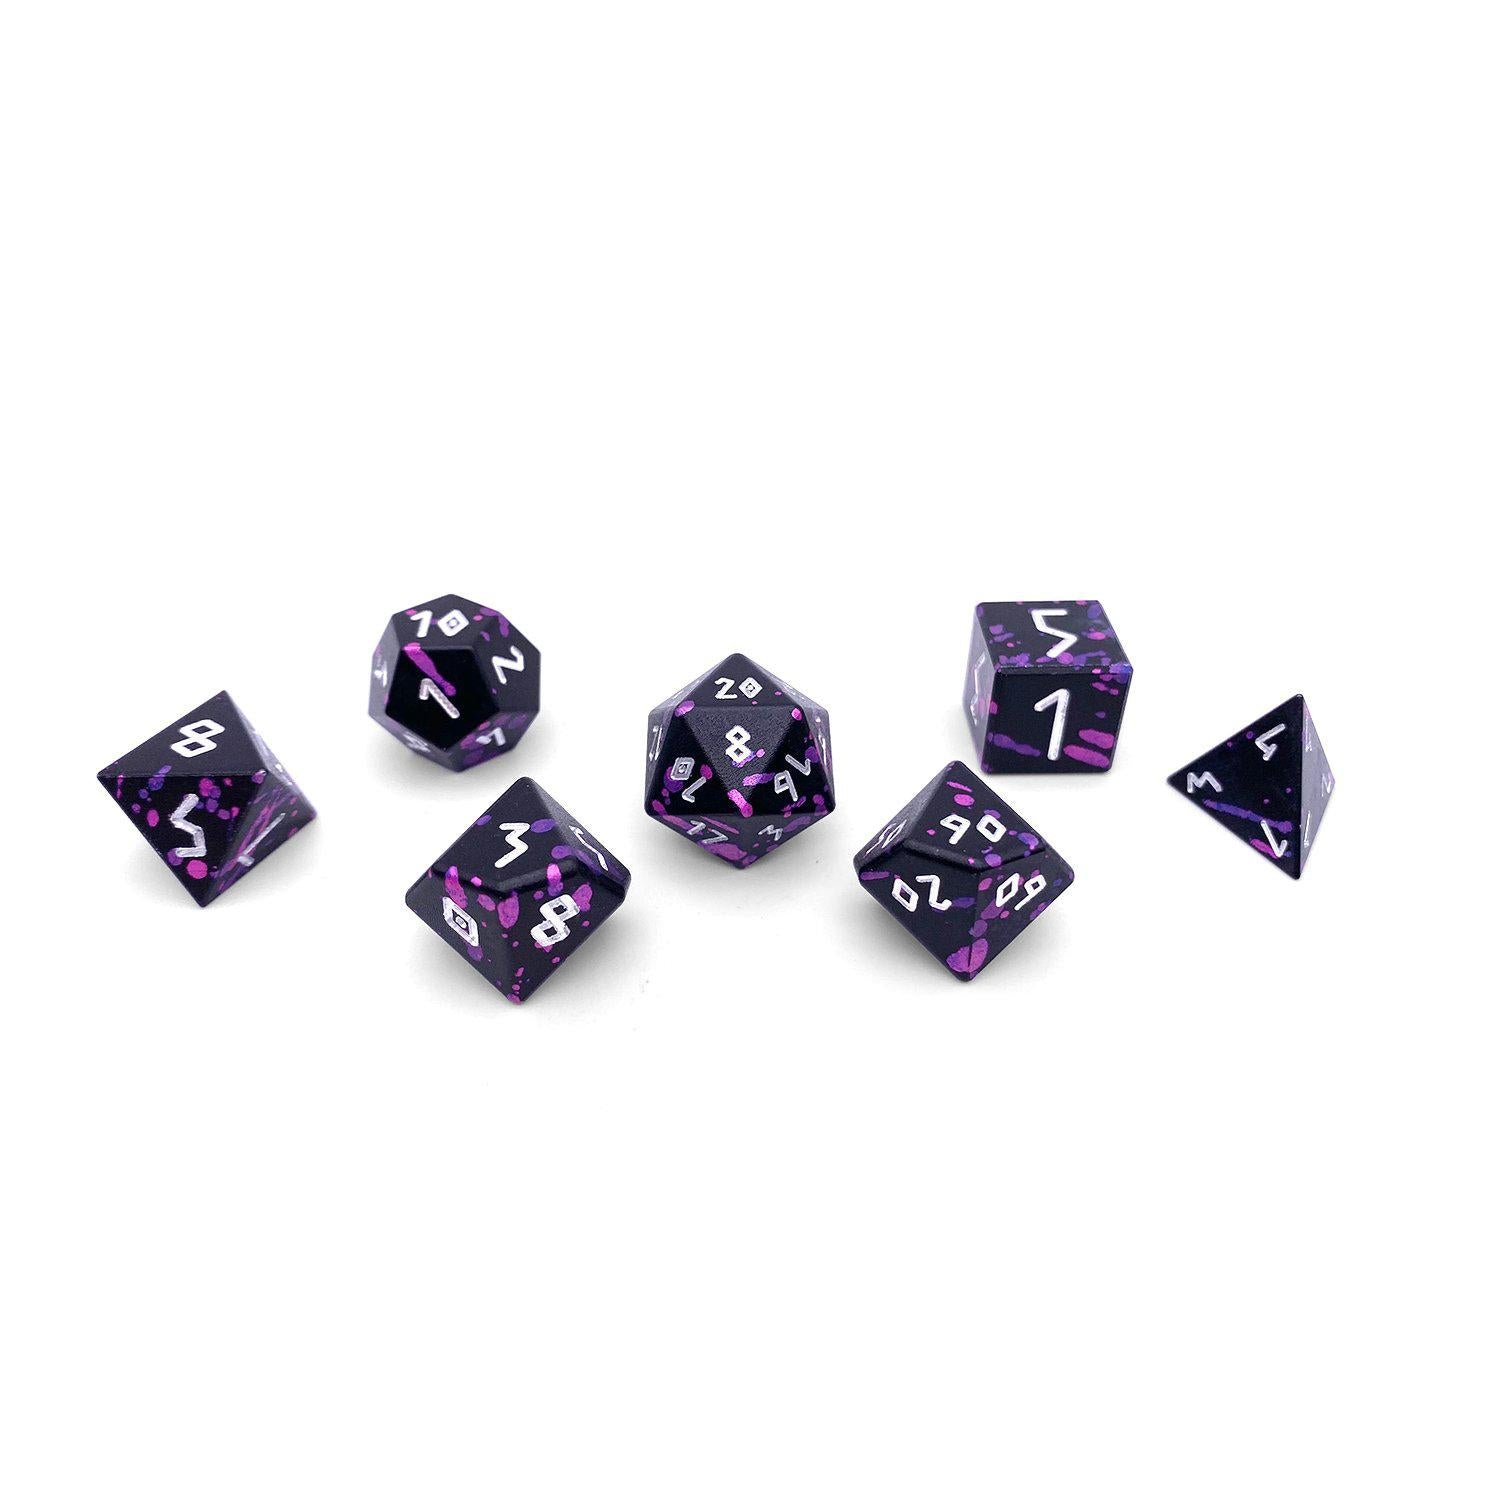 Death Knight - Wondrous Dice Set of 7 RPG Dice by Norse Foundry Precision Polyhedral Dice Set